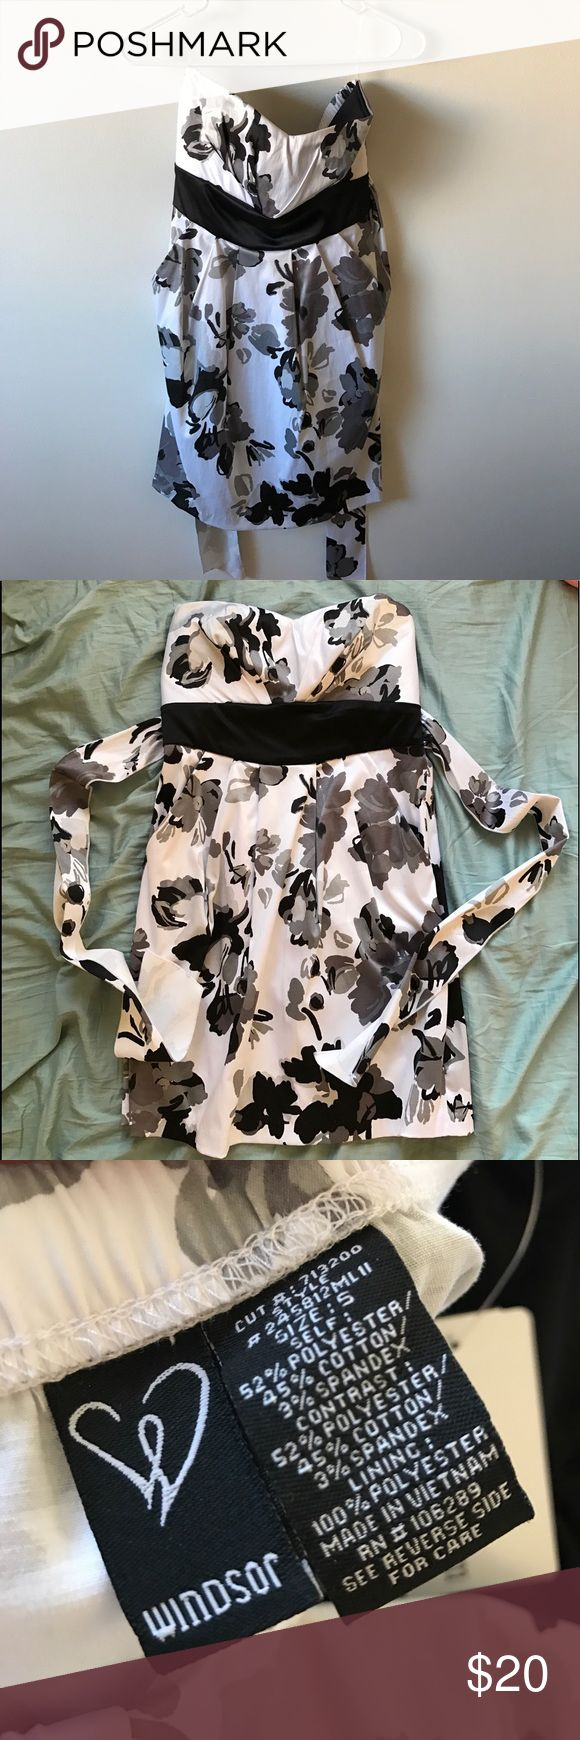 Black and white strapless dress Black and white strapless semi formal dress from Windsor. NEW and never worn. WINDSOR Dresses Strapless